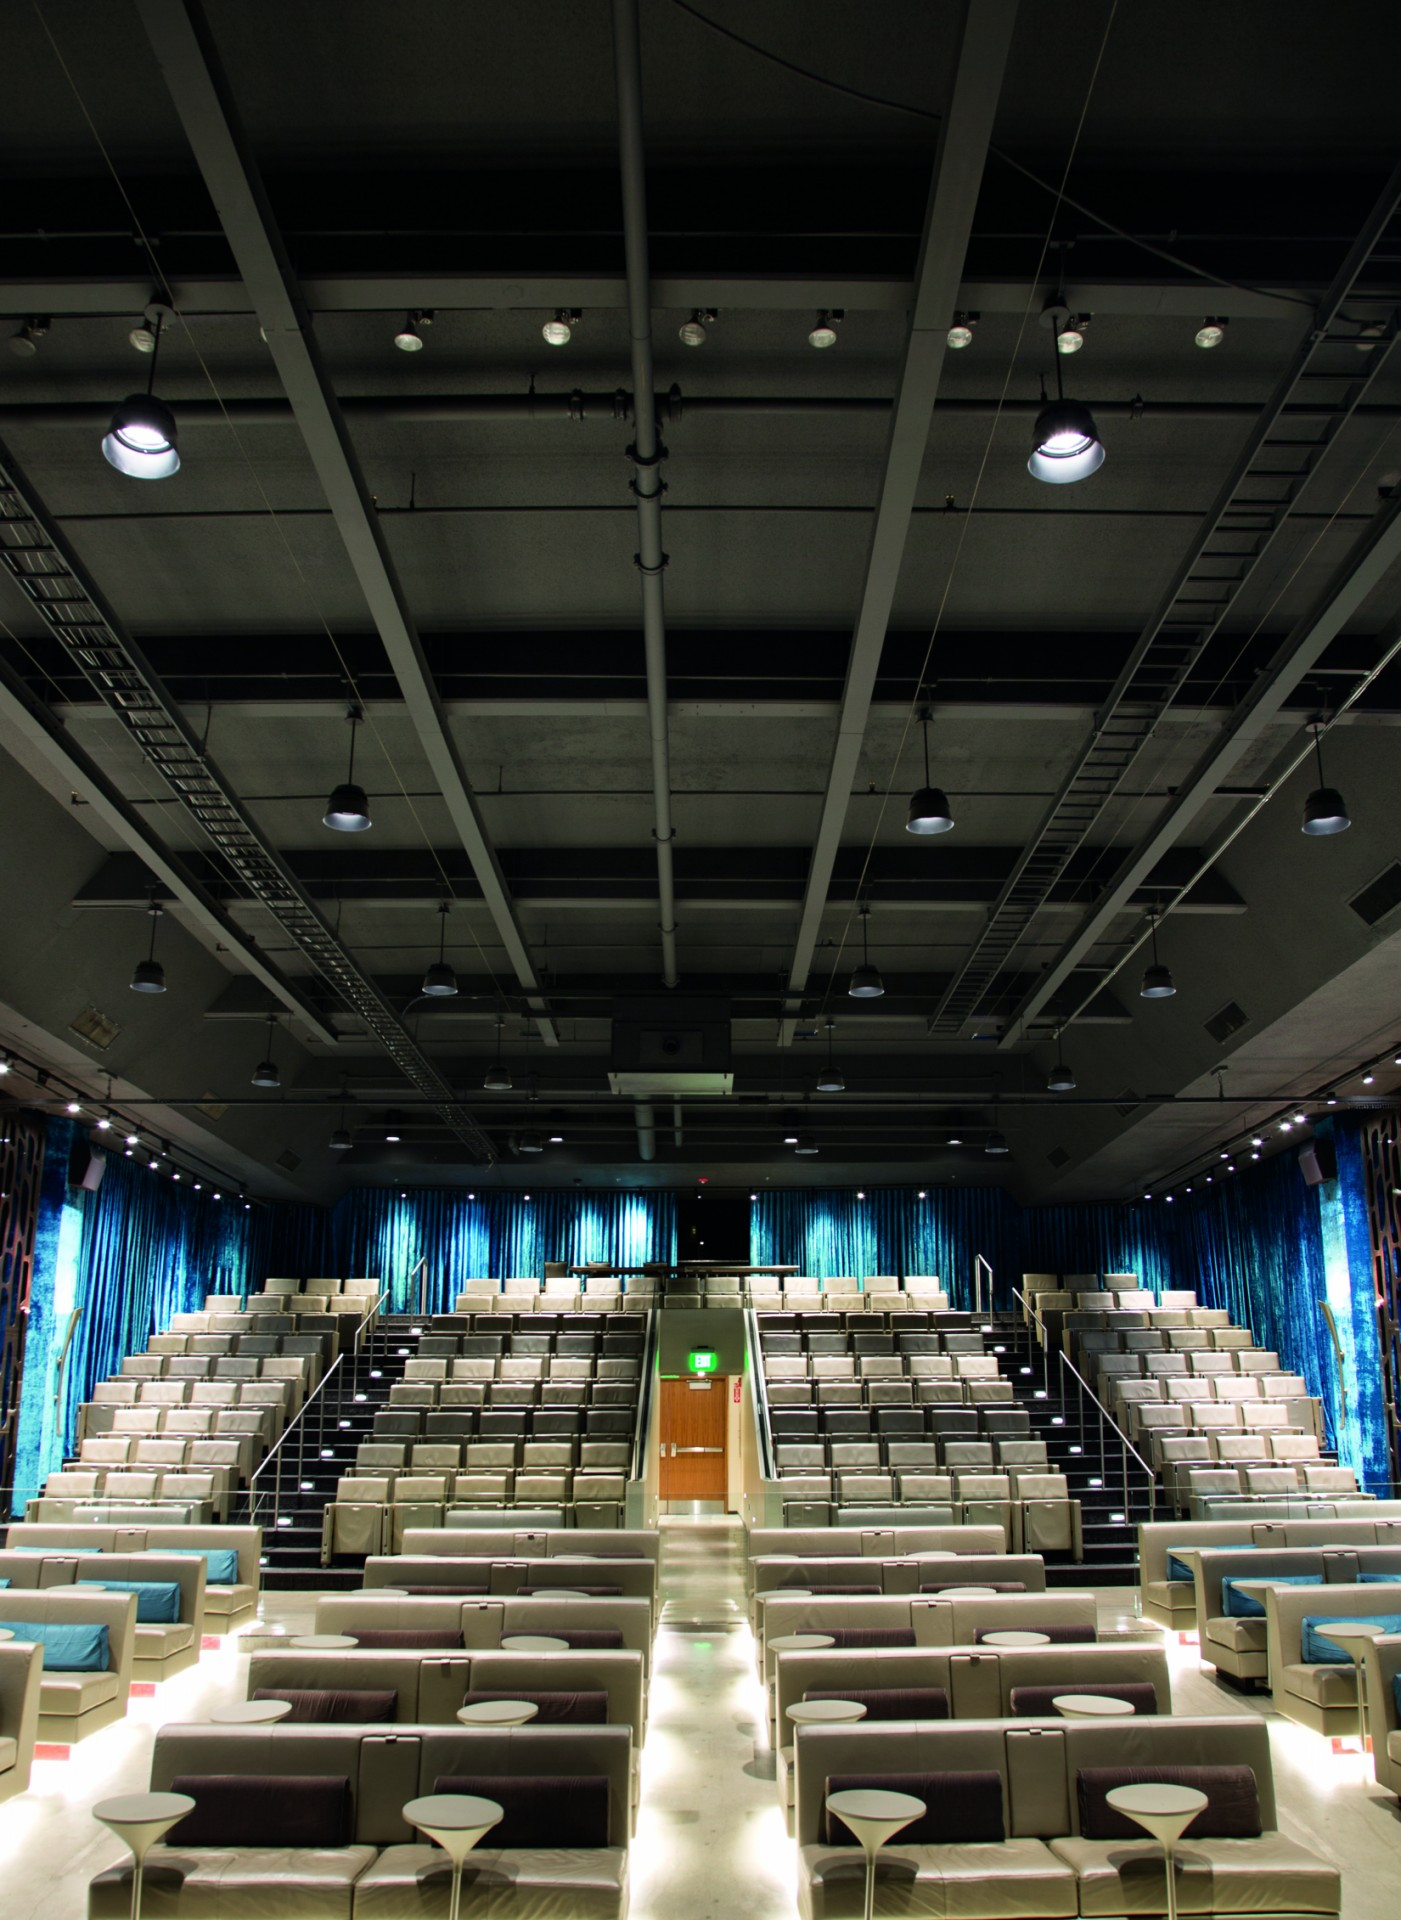 With full dimming capabilities and separate zones of control, the new lighting design has turned Theatre 1 into a modern, multi-functional performance and event space.